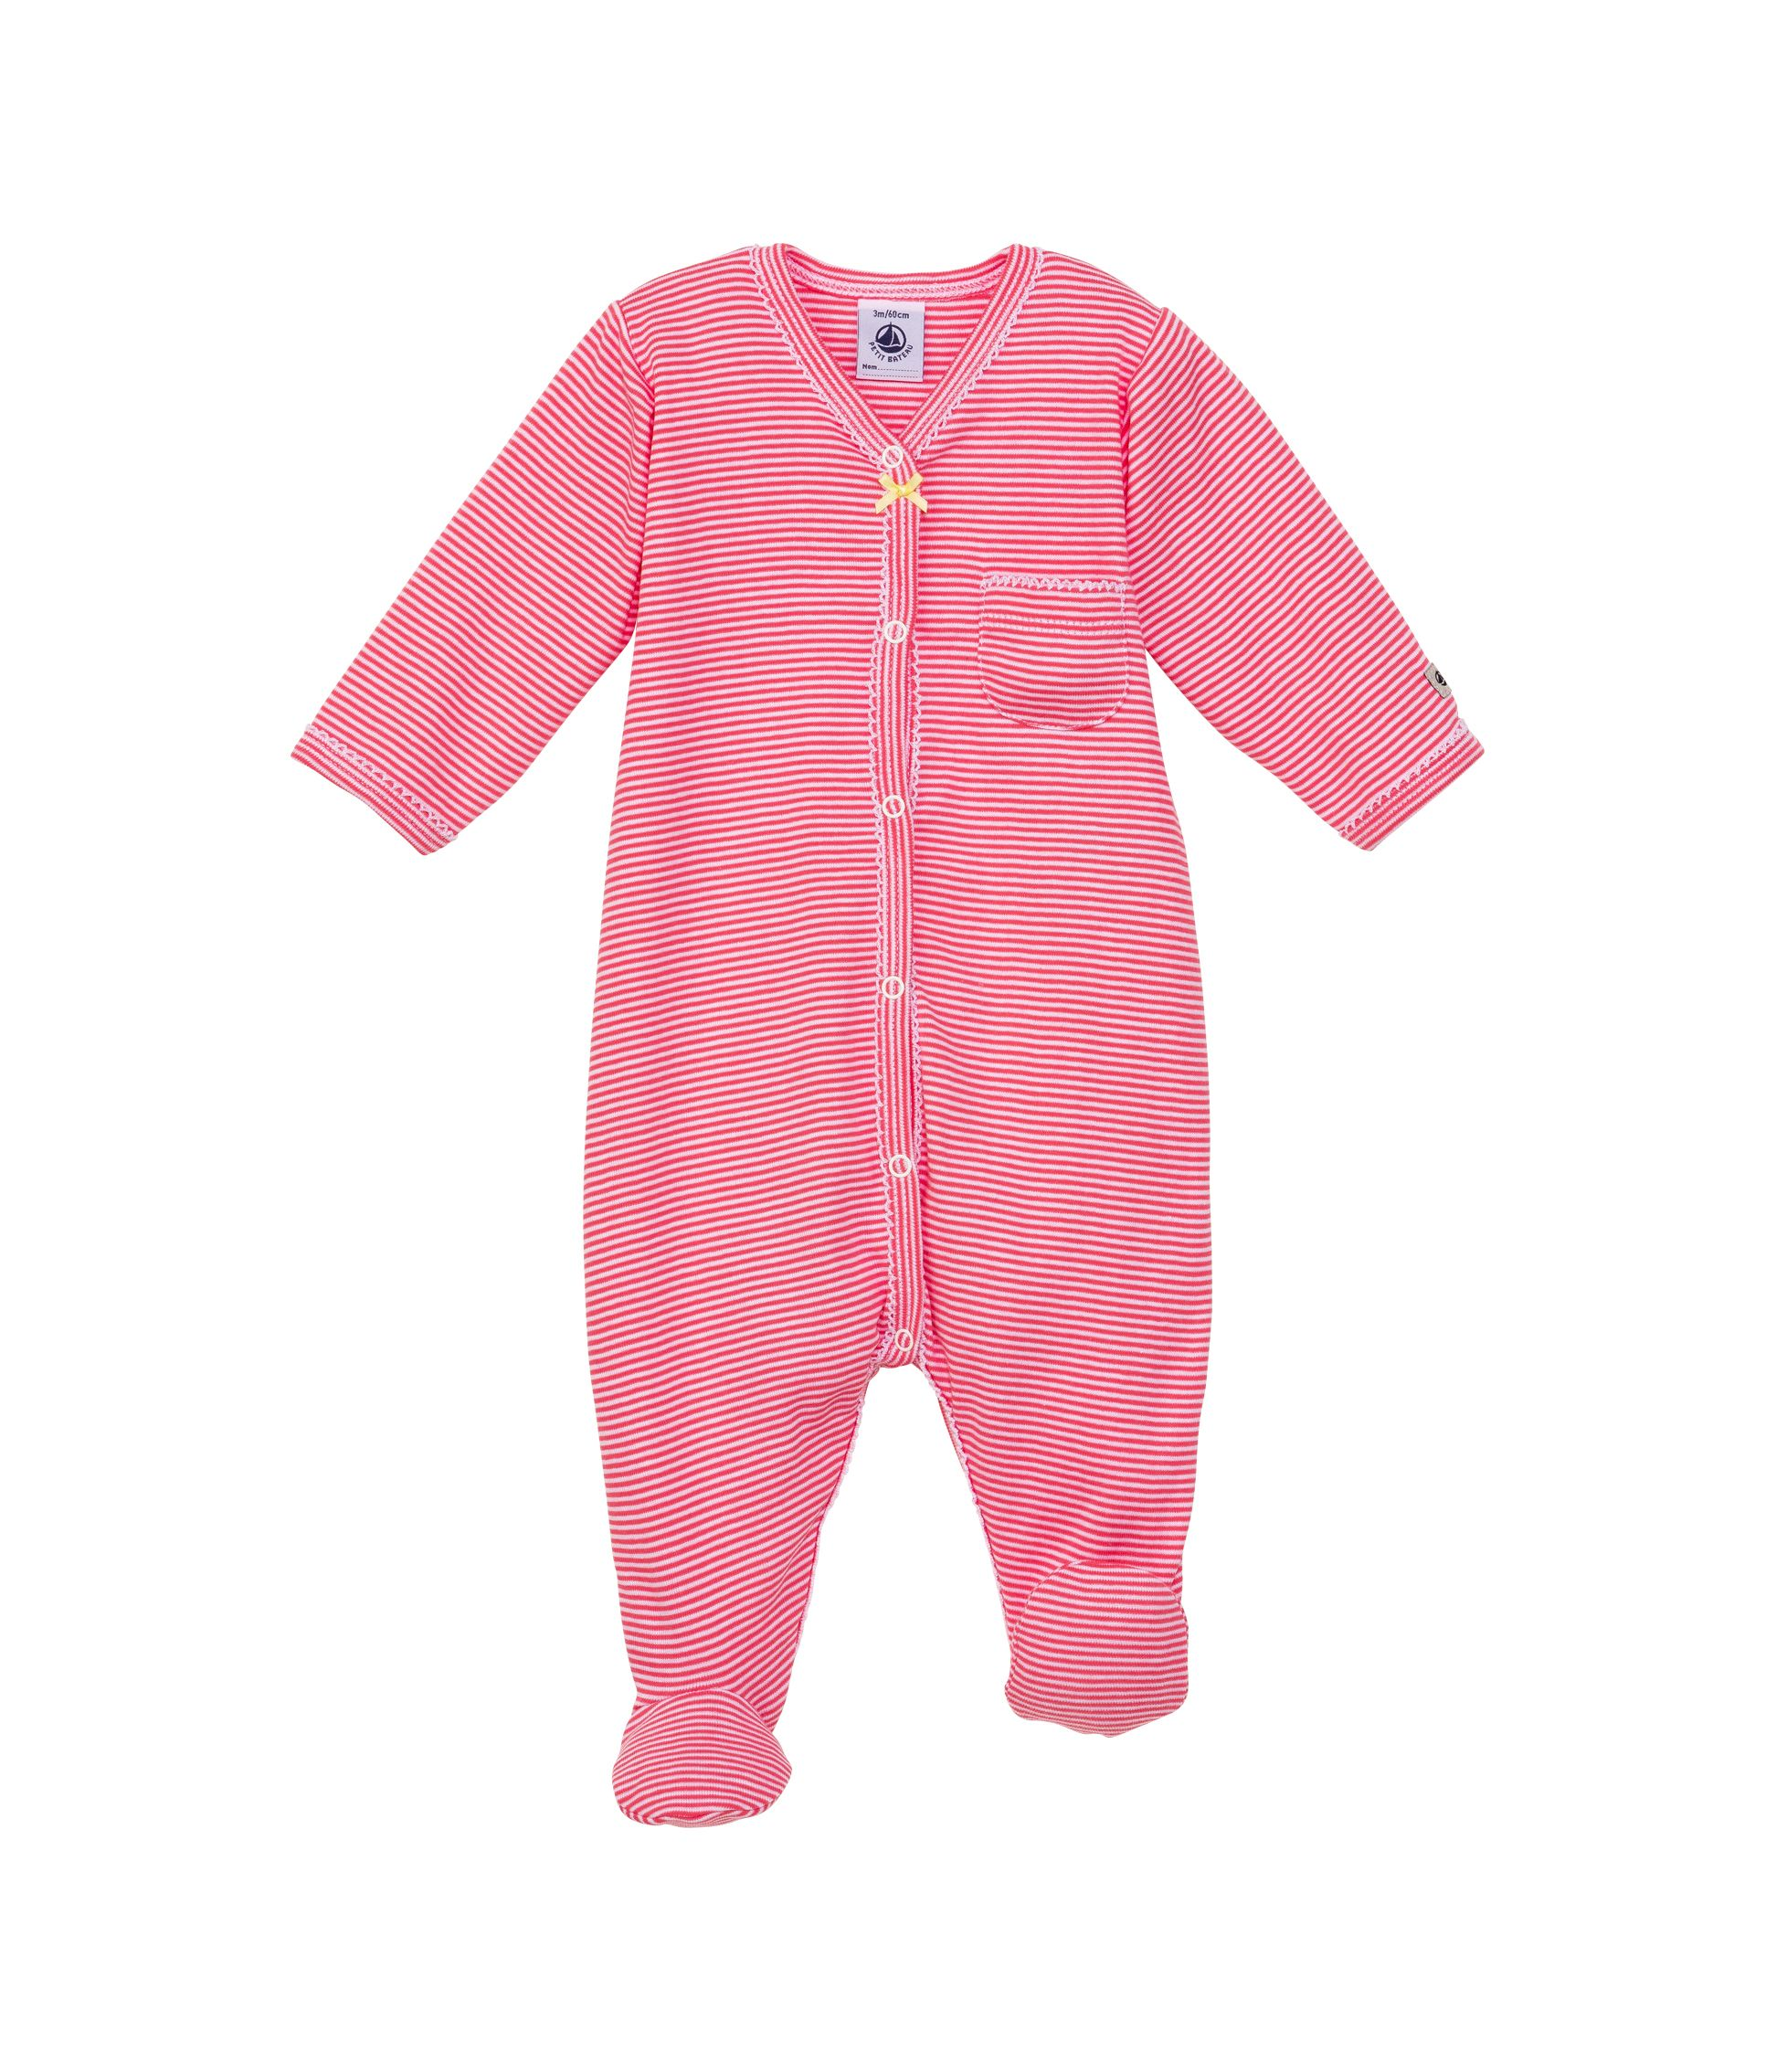 Baby girls milleraies sleepsuit